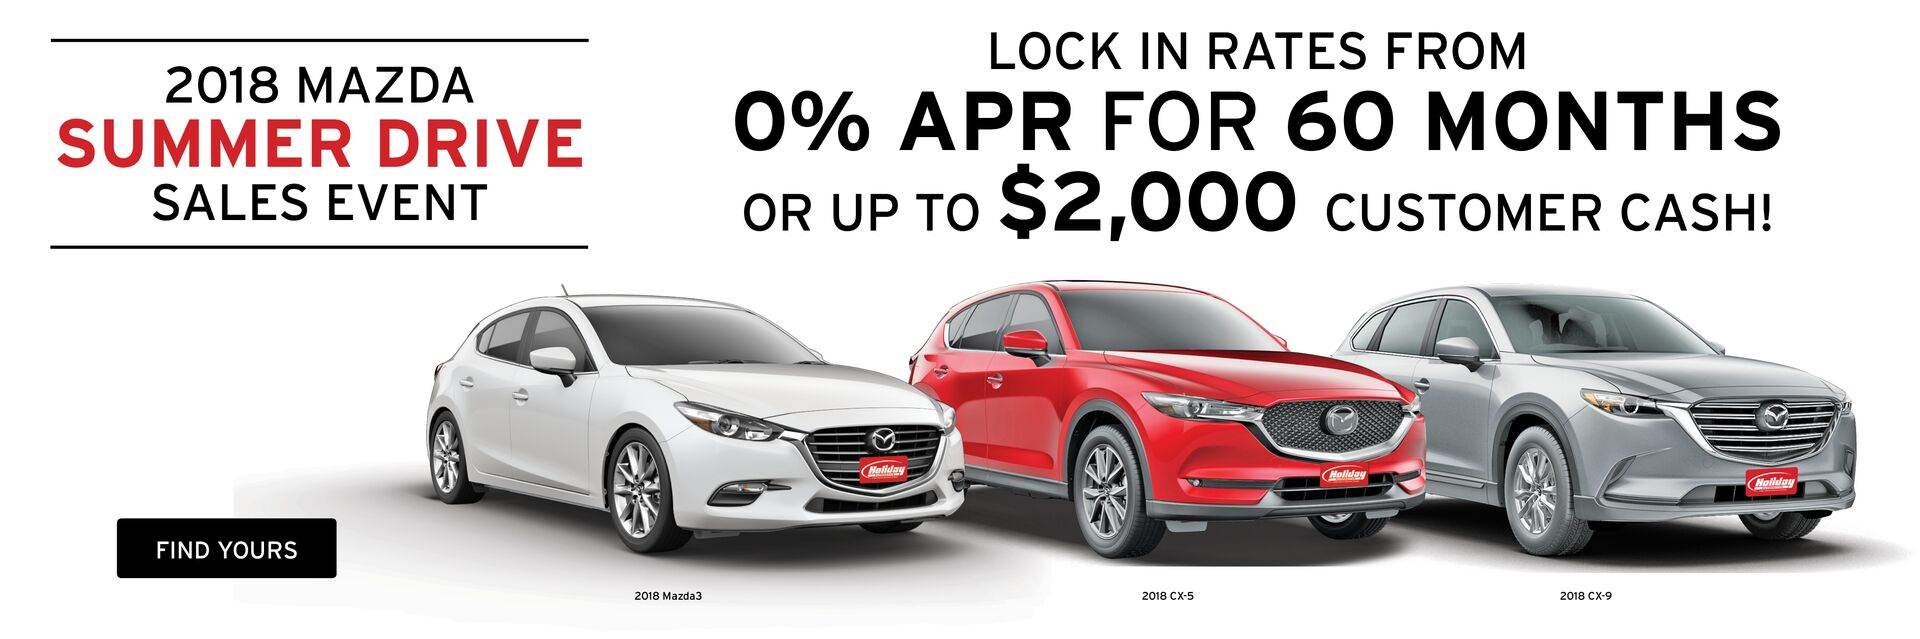 Great offers on new Mazdas at Holiday Automotive in Fond du Lac, WI